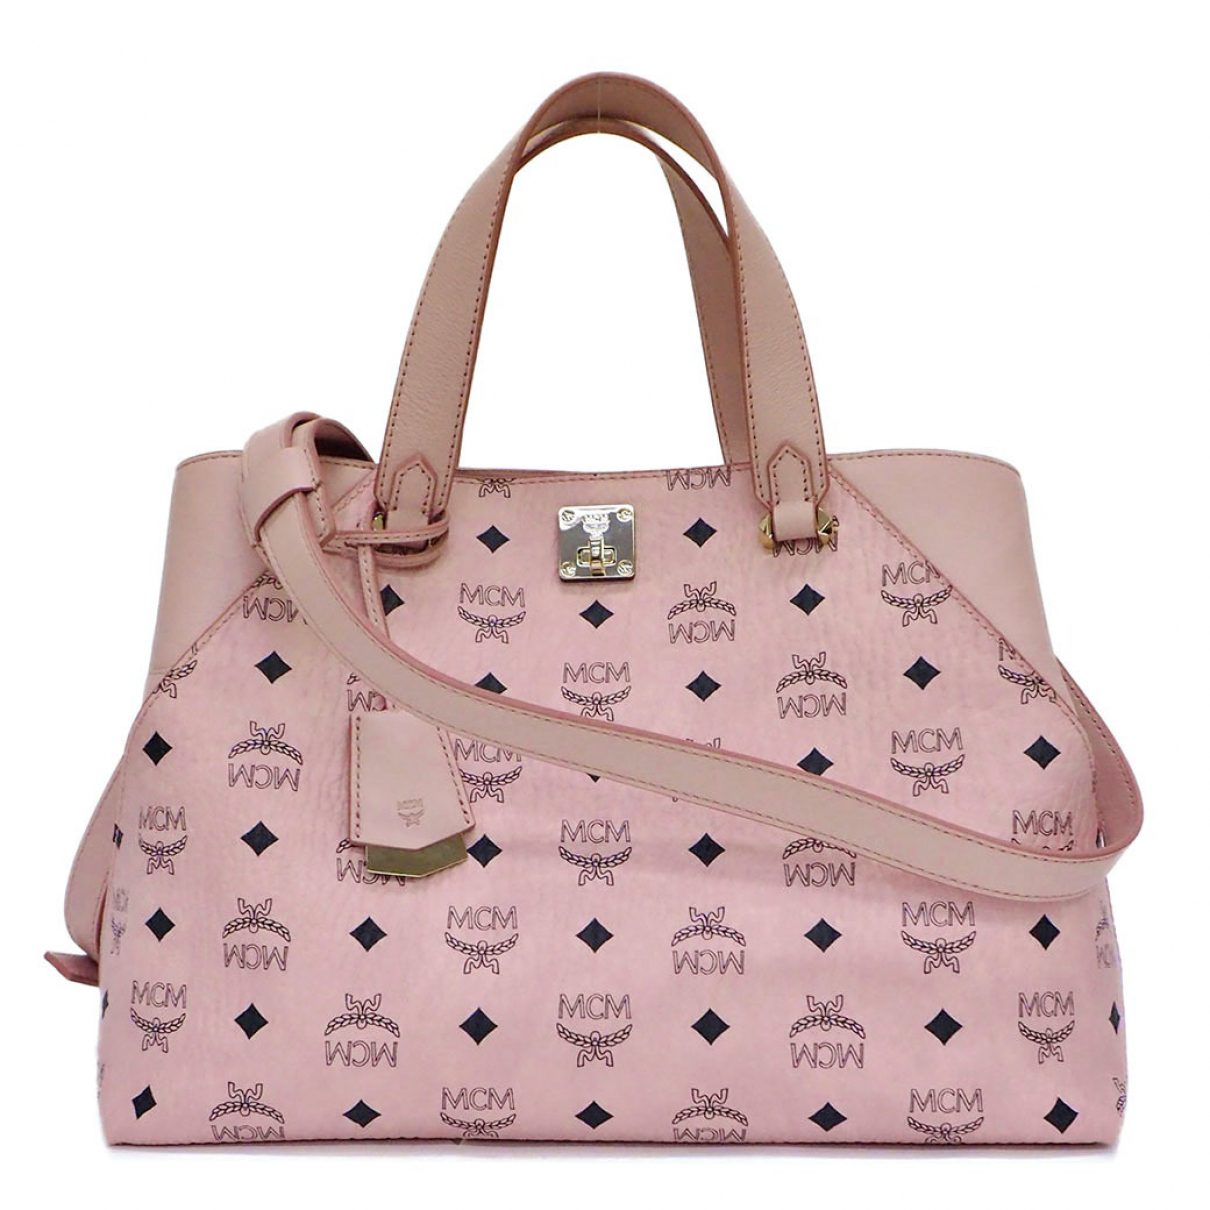 Mcm \N Pink Leather handbag for Women \N